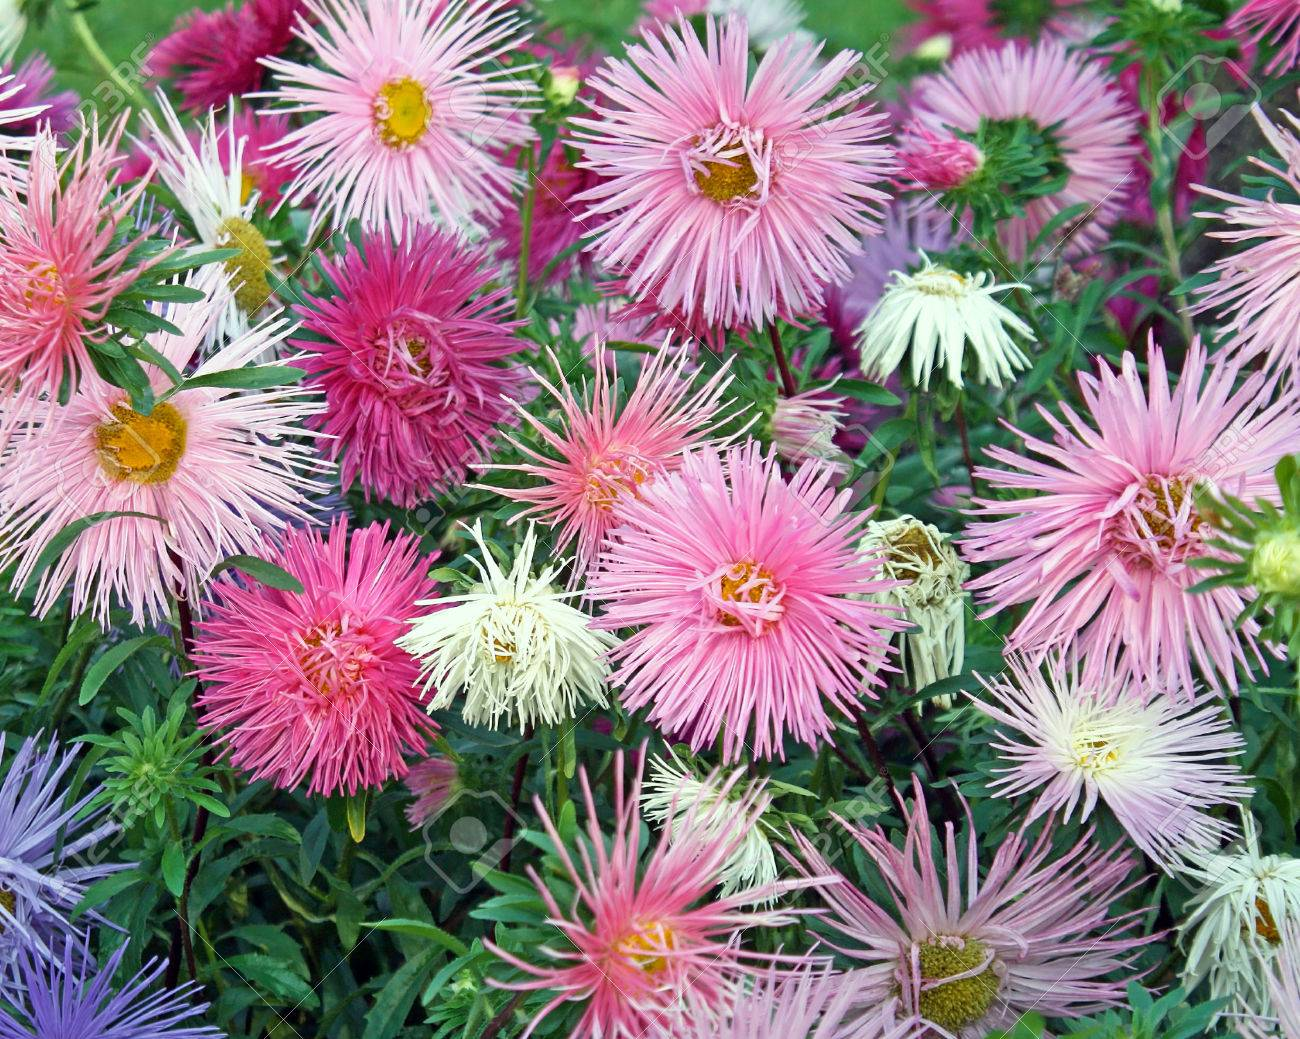 Delicate and dainty blooms in soft pastel colors of the aster delicate and dainty blooms in soft pastel colors of the aster flower a garden perennial mightylinksfo